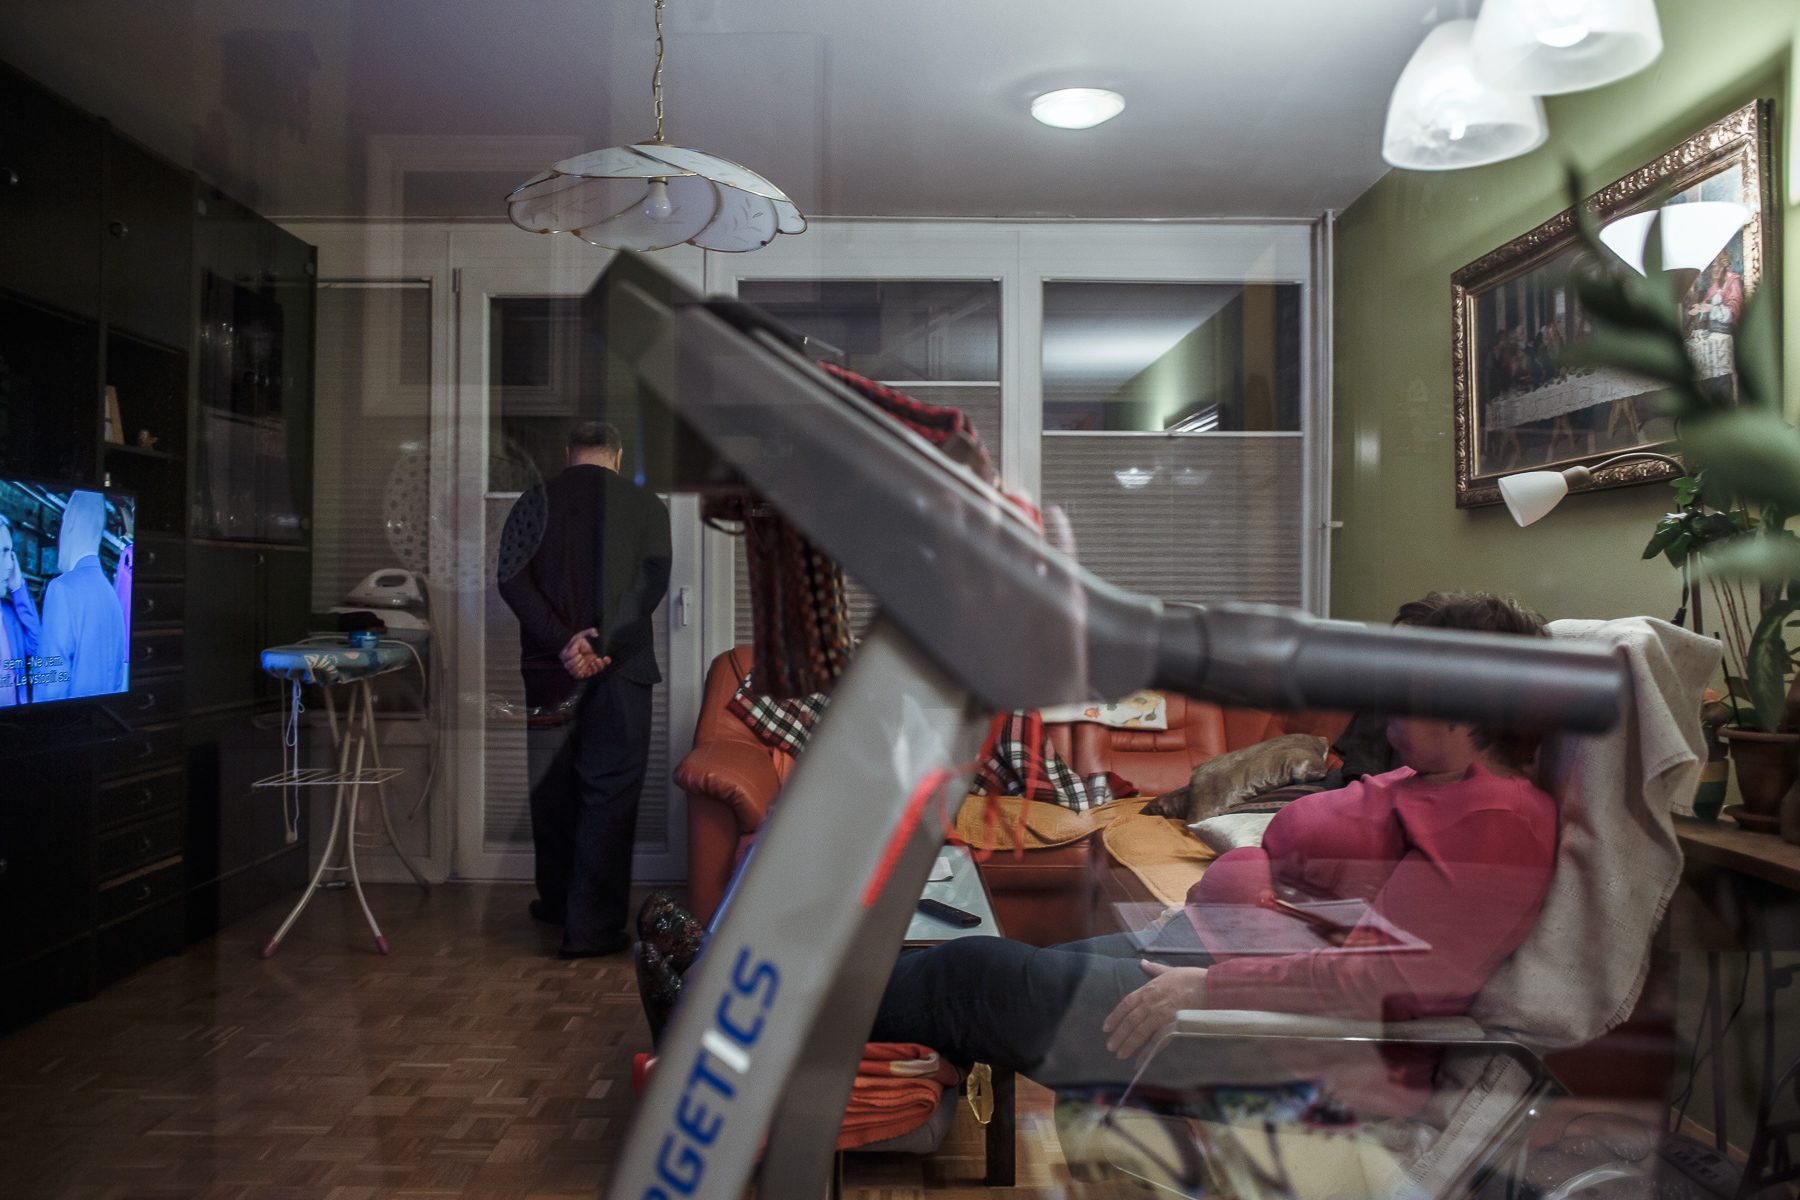 Residents of an apartment building in Kranj, Slovenia, spending their time at home during the coronavirus epidemic on April 3, 2020.